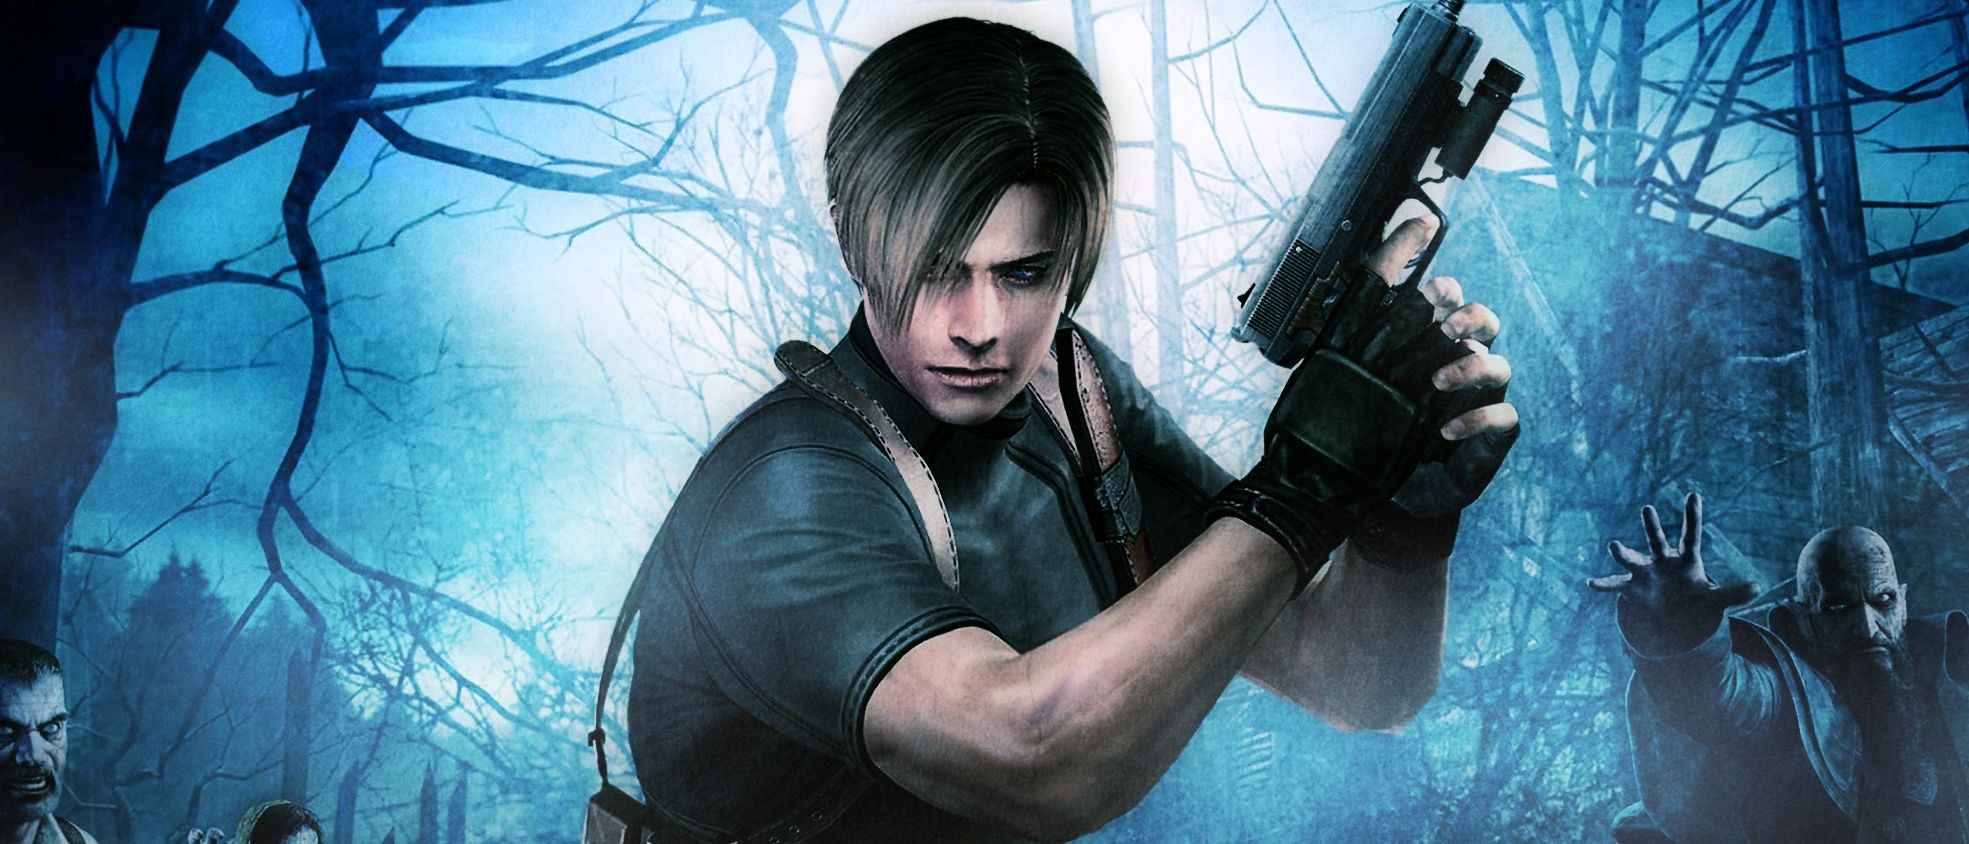 Resident Evil 4 Hd Wallpapers Download For Desktop Free